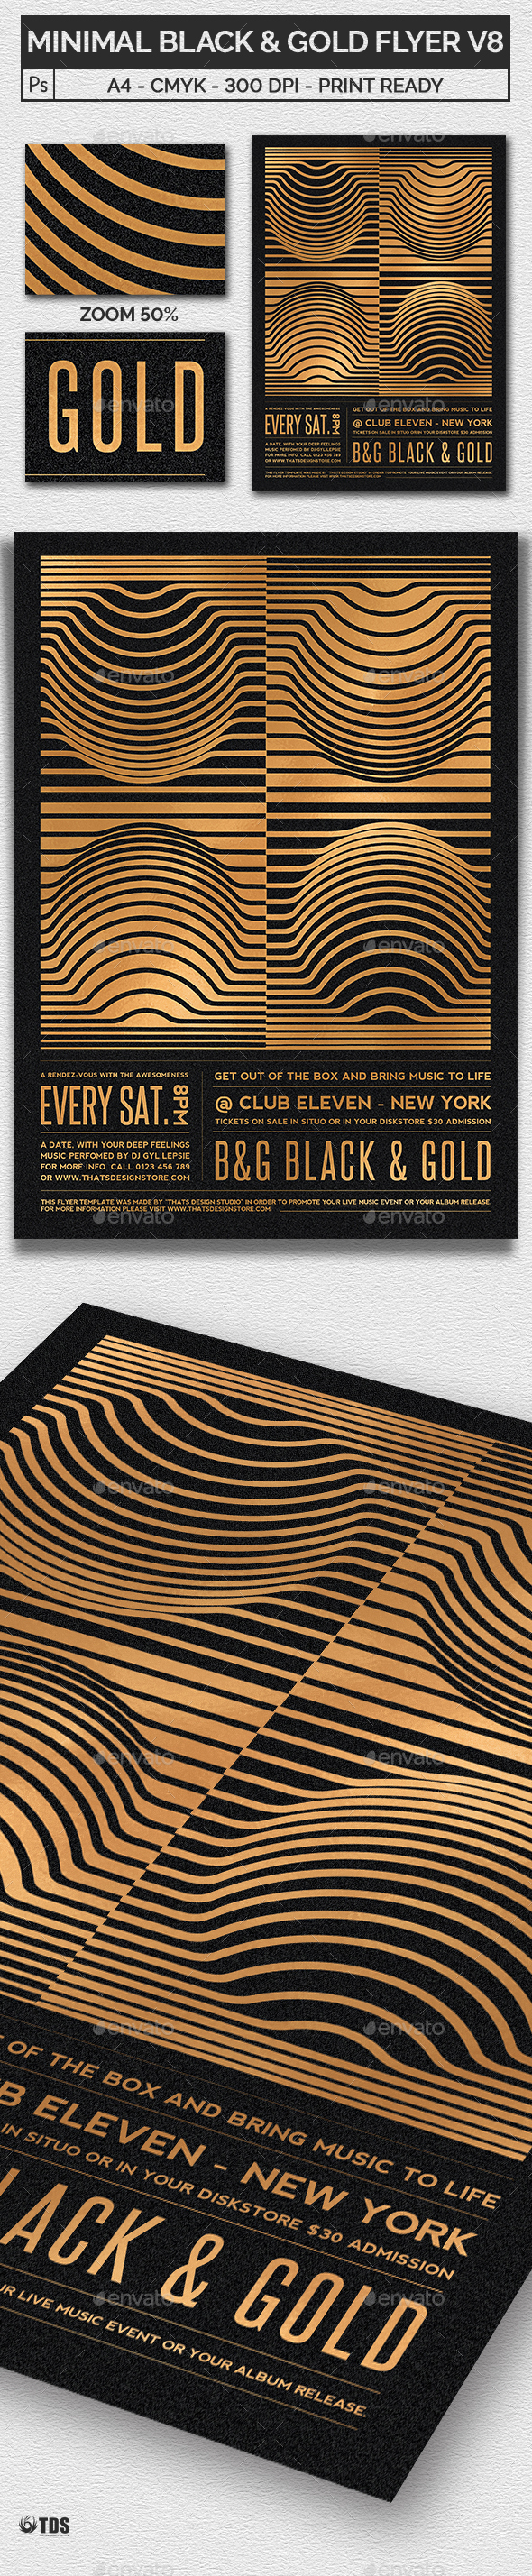 Minimal Black and Gold Flyer Template V8 - Clubs & Parties Events